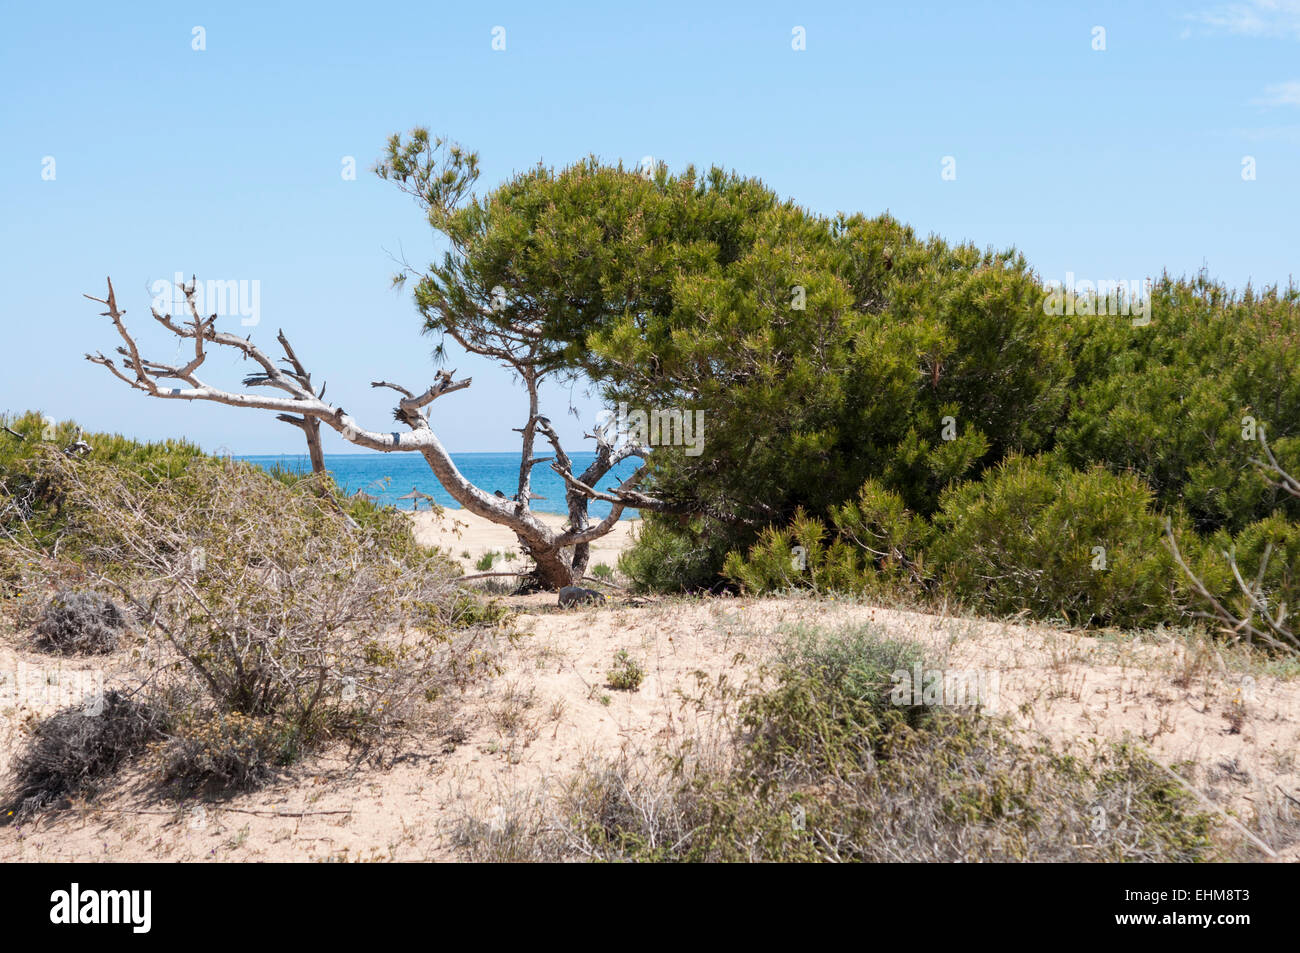 Aleppo Pine, Pinus halepensis, growing in dunes in Carabassi Beach, Elche, Alicante, Spain - Stock Image